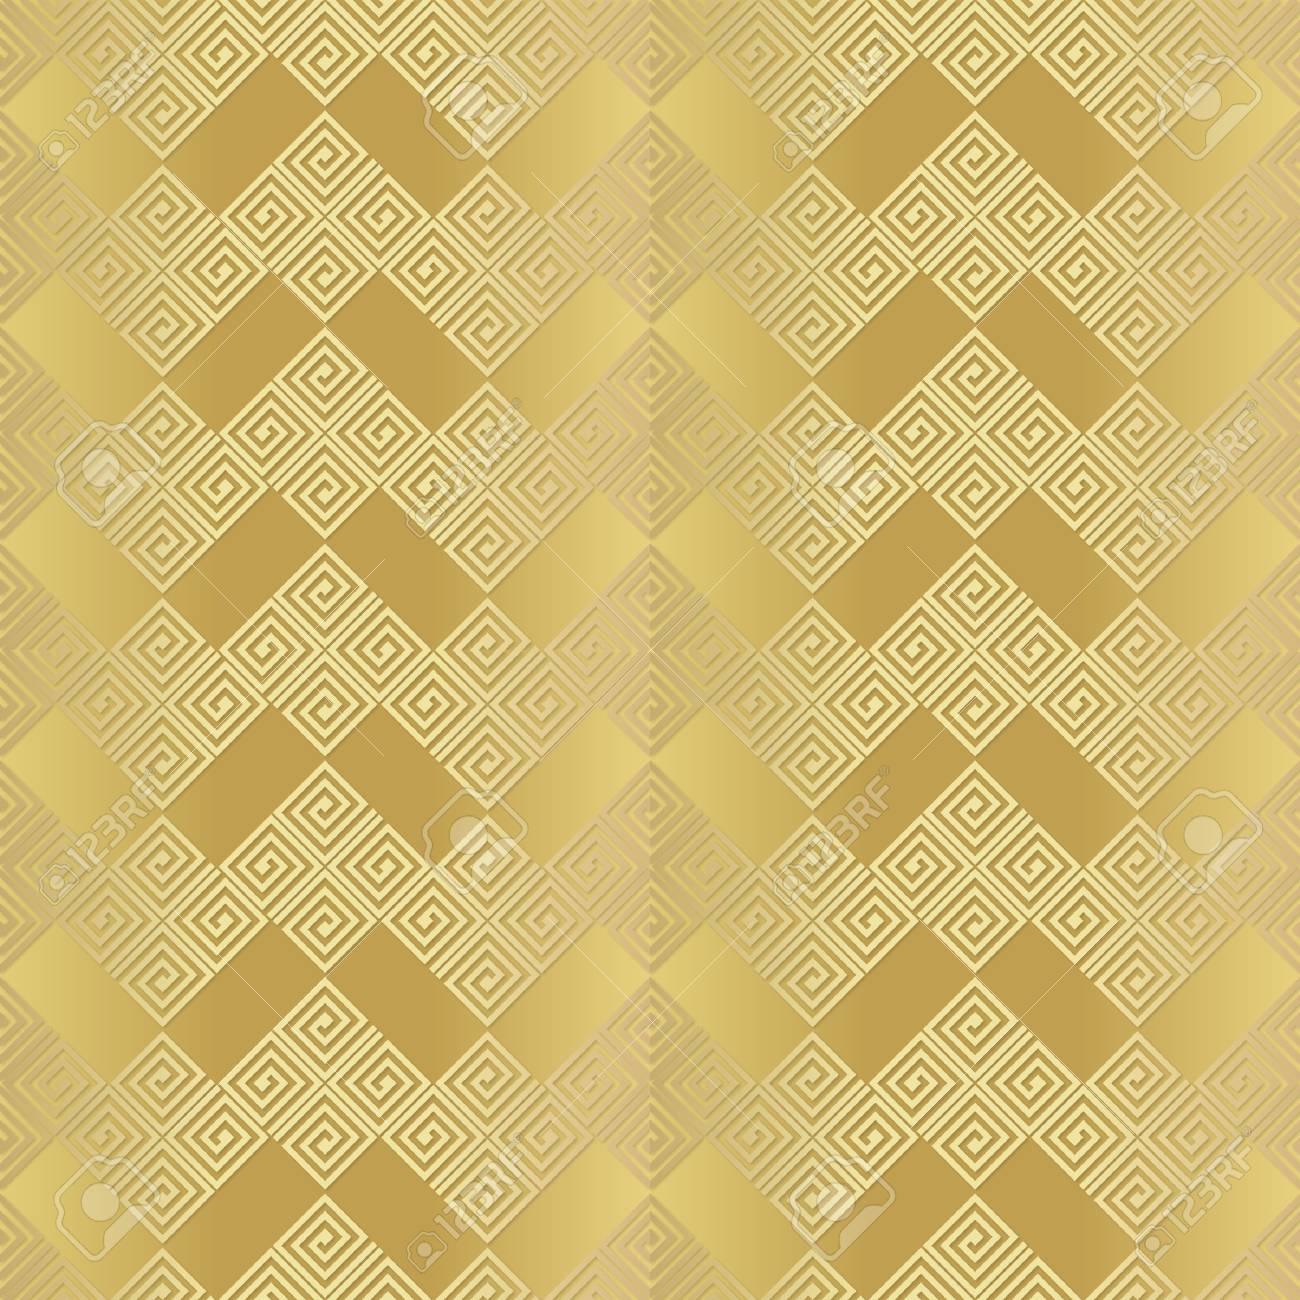 Metallic Color Seamless Pattern A Gold Background As An Imitation Of Metal For Printing